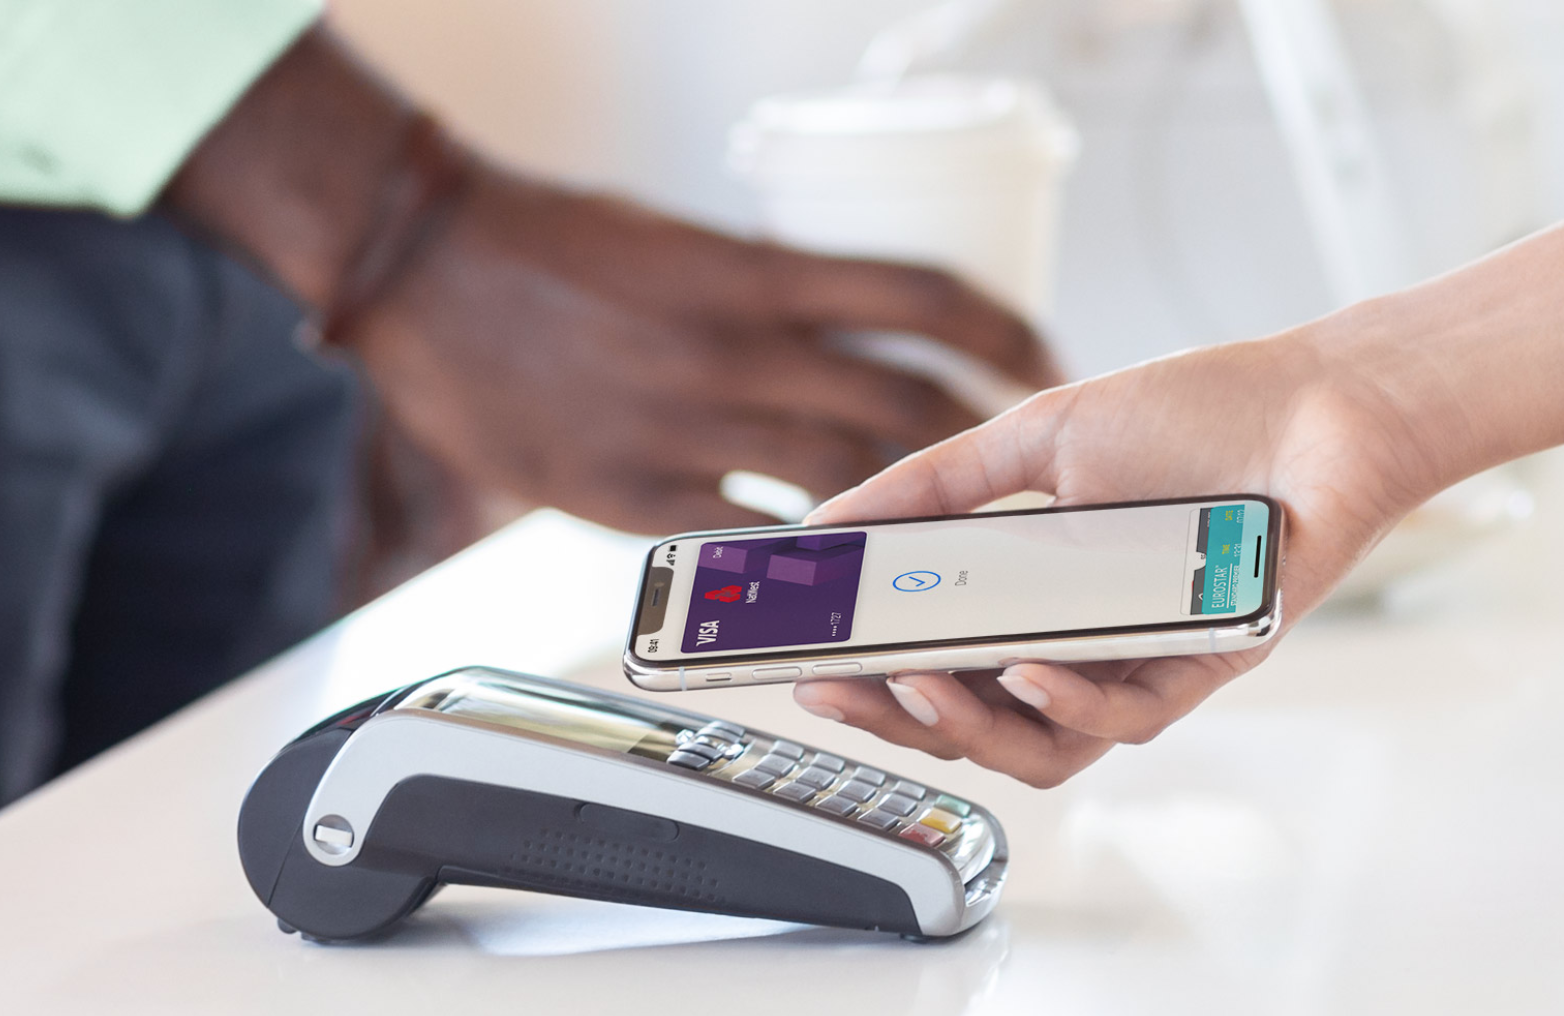 A month with just Apple Pay, Can it be done?